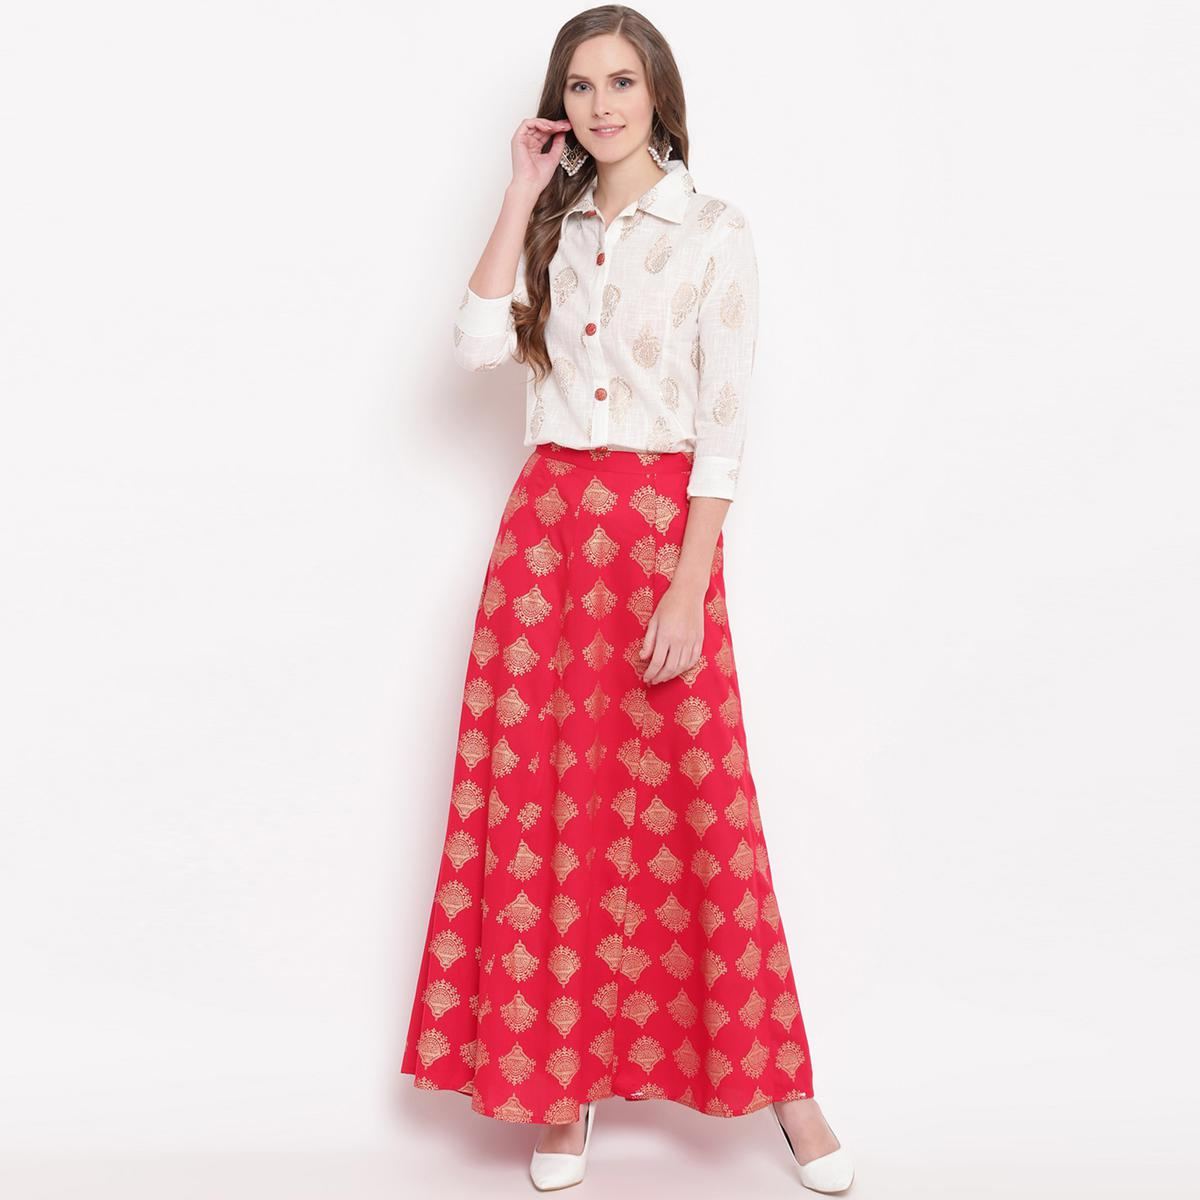 Pleasance White-Red Colored Partywear Foil Printed Cotton Shirt-Skirt Set